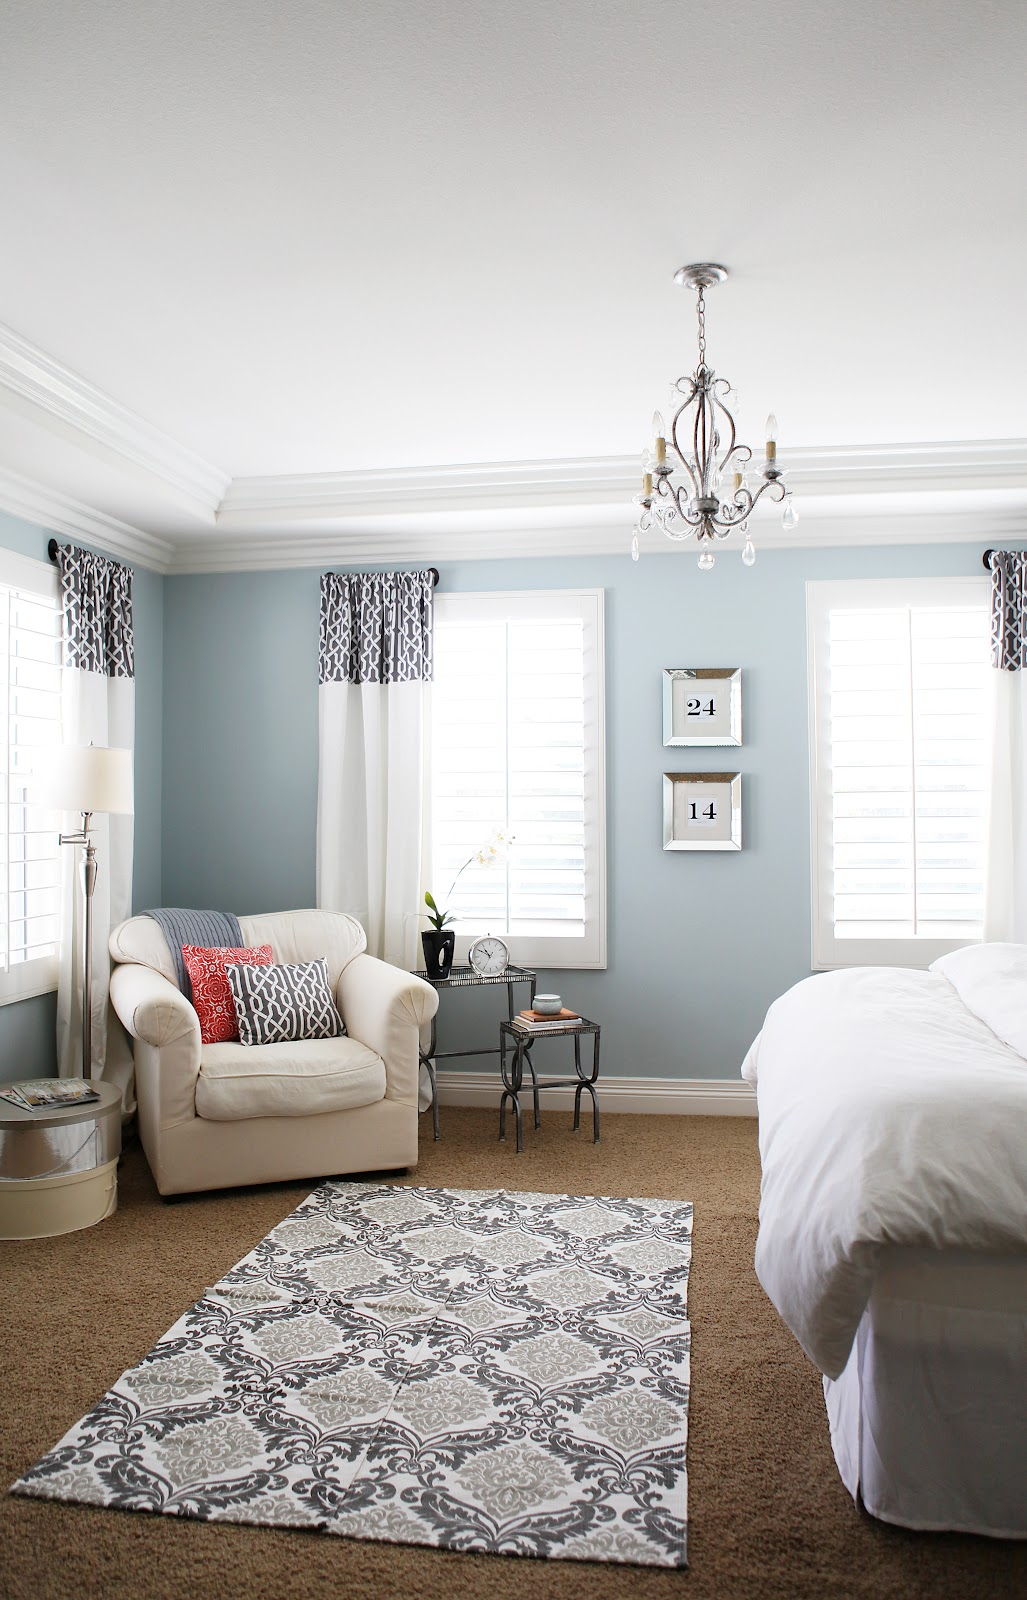 Sadie stella favorite room feature a thoughtful place Master bedroom light blue walls